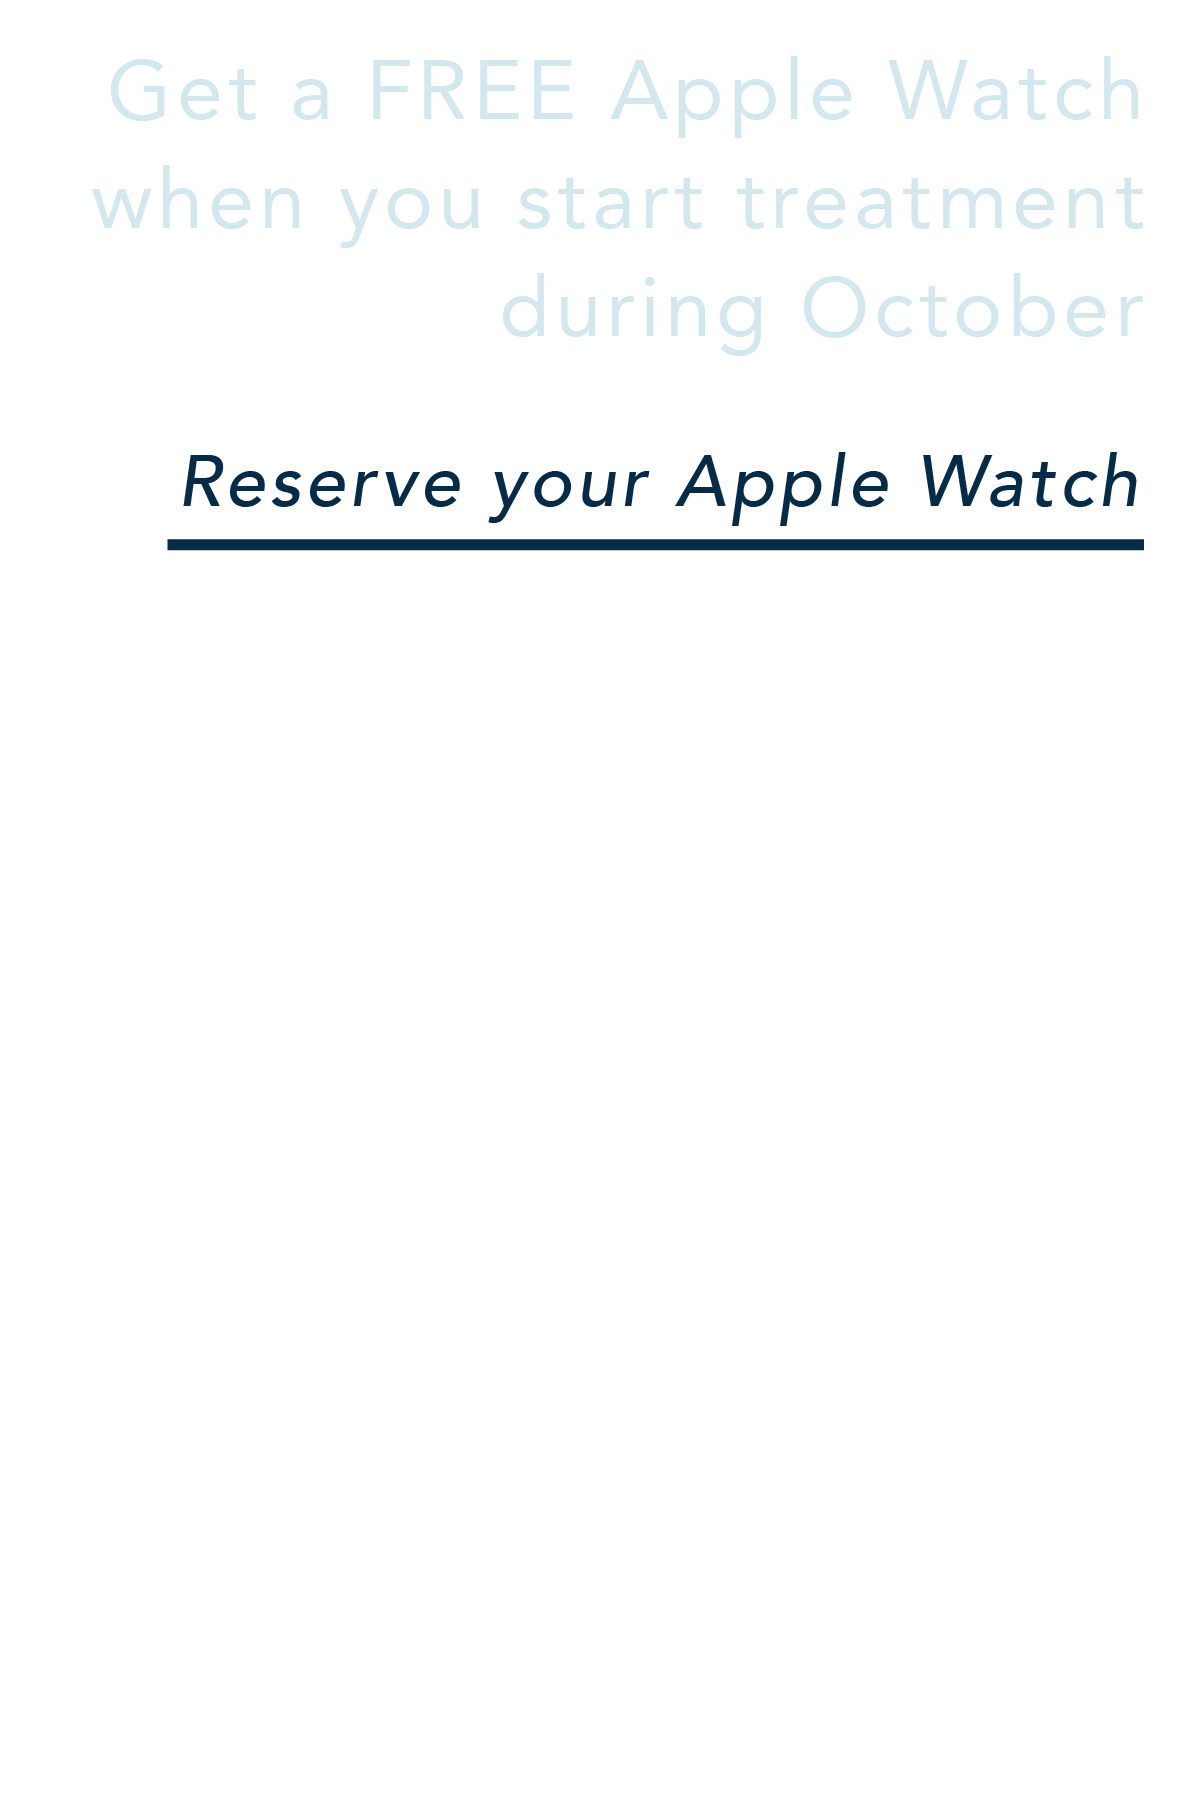 Get a FREE Apple Watch when you start brace,s Invisalign, or Impressions during October.